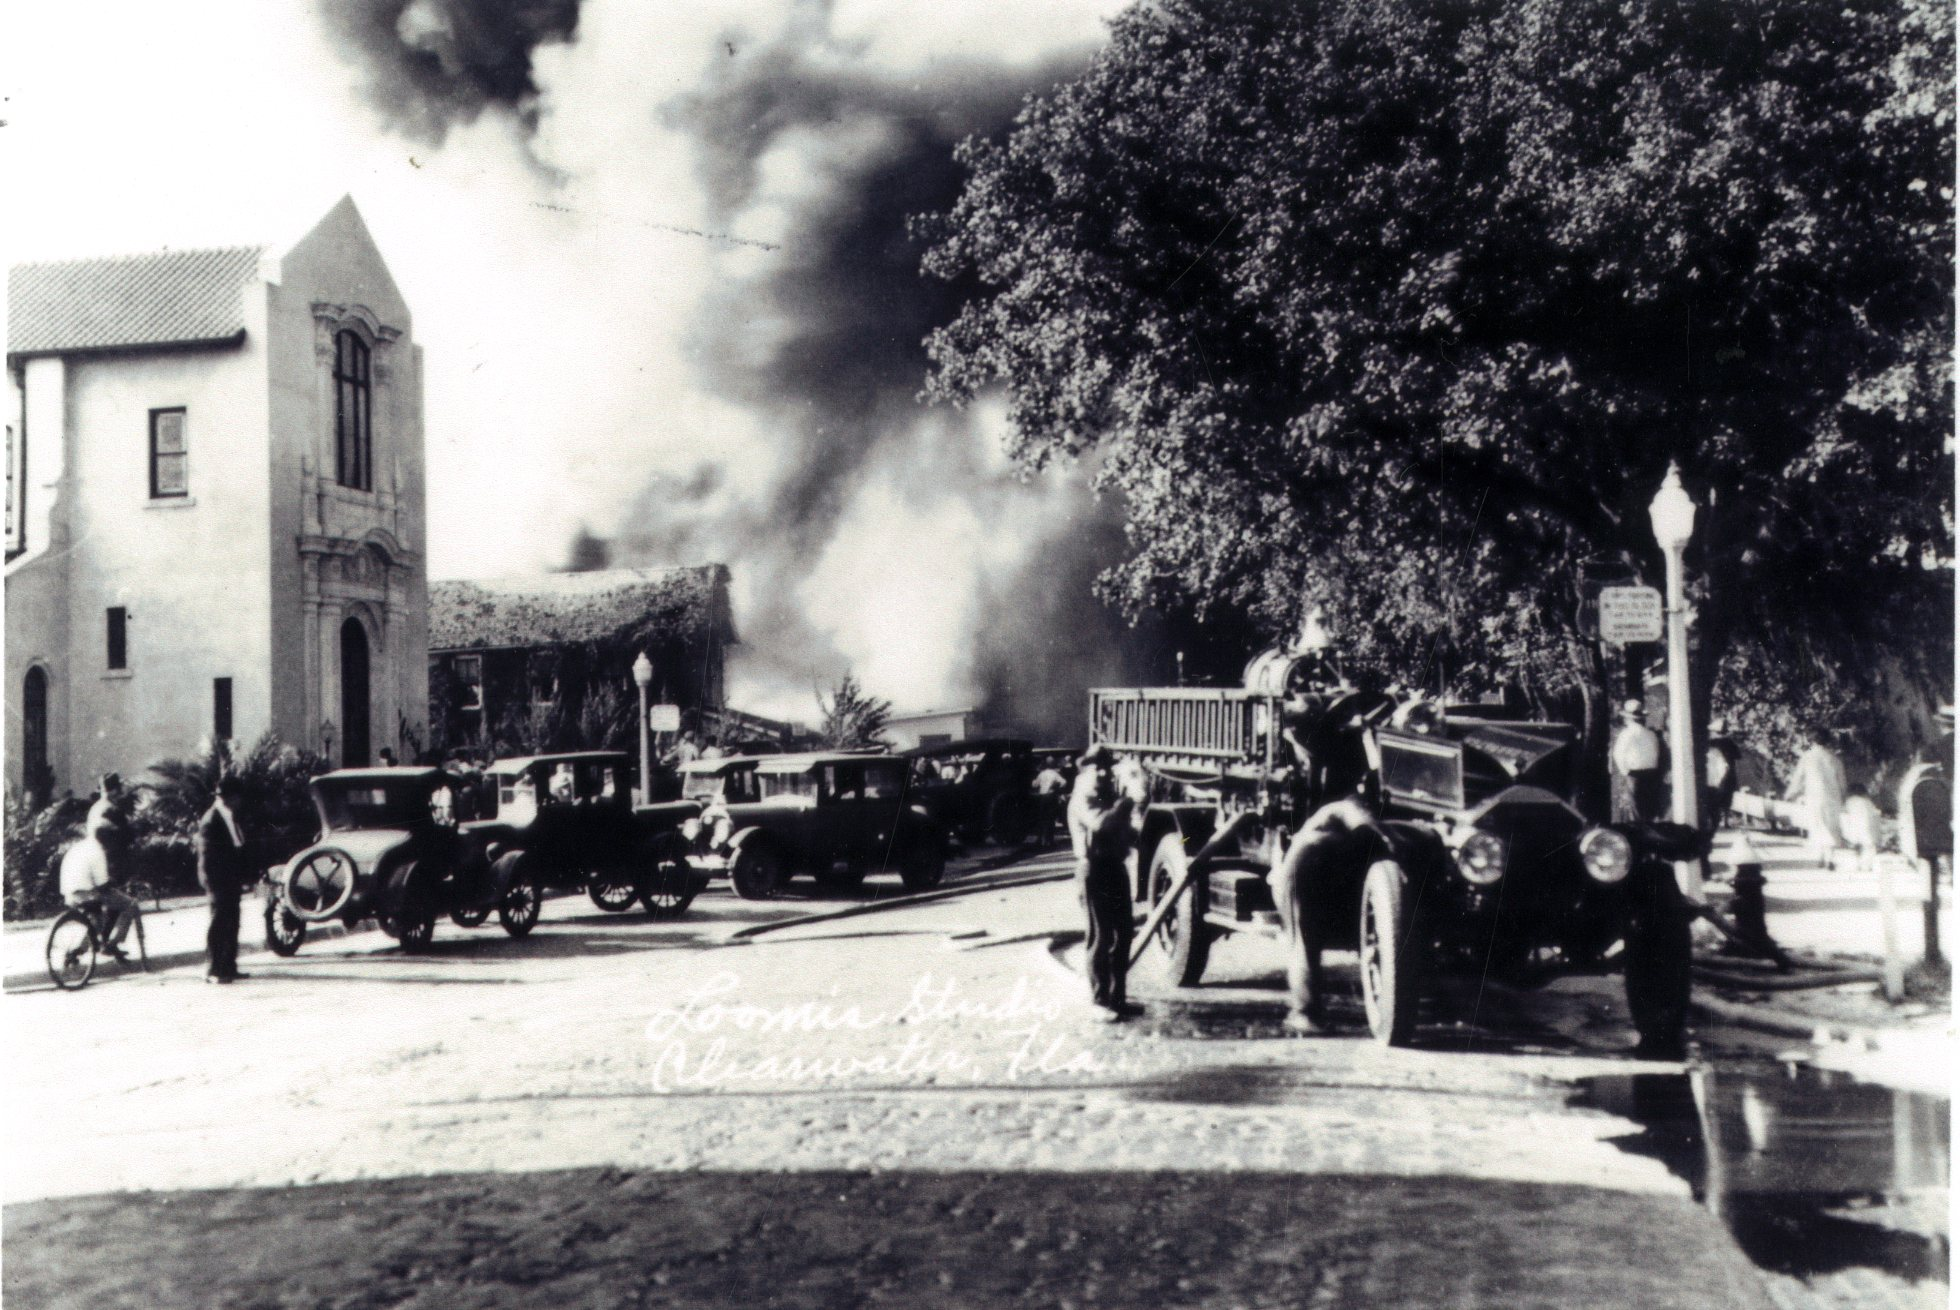 Firefighters and fire engine fighting a fire at the Hart Rug Co. on S. Ft. Harrison St. in Clearwater, Florida, April 28, 1926.